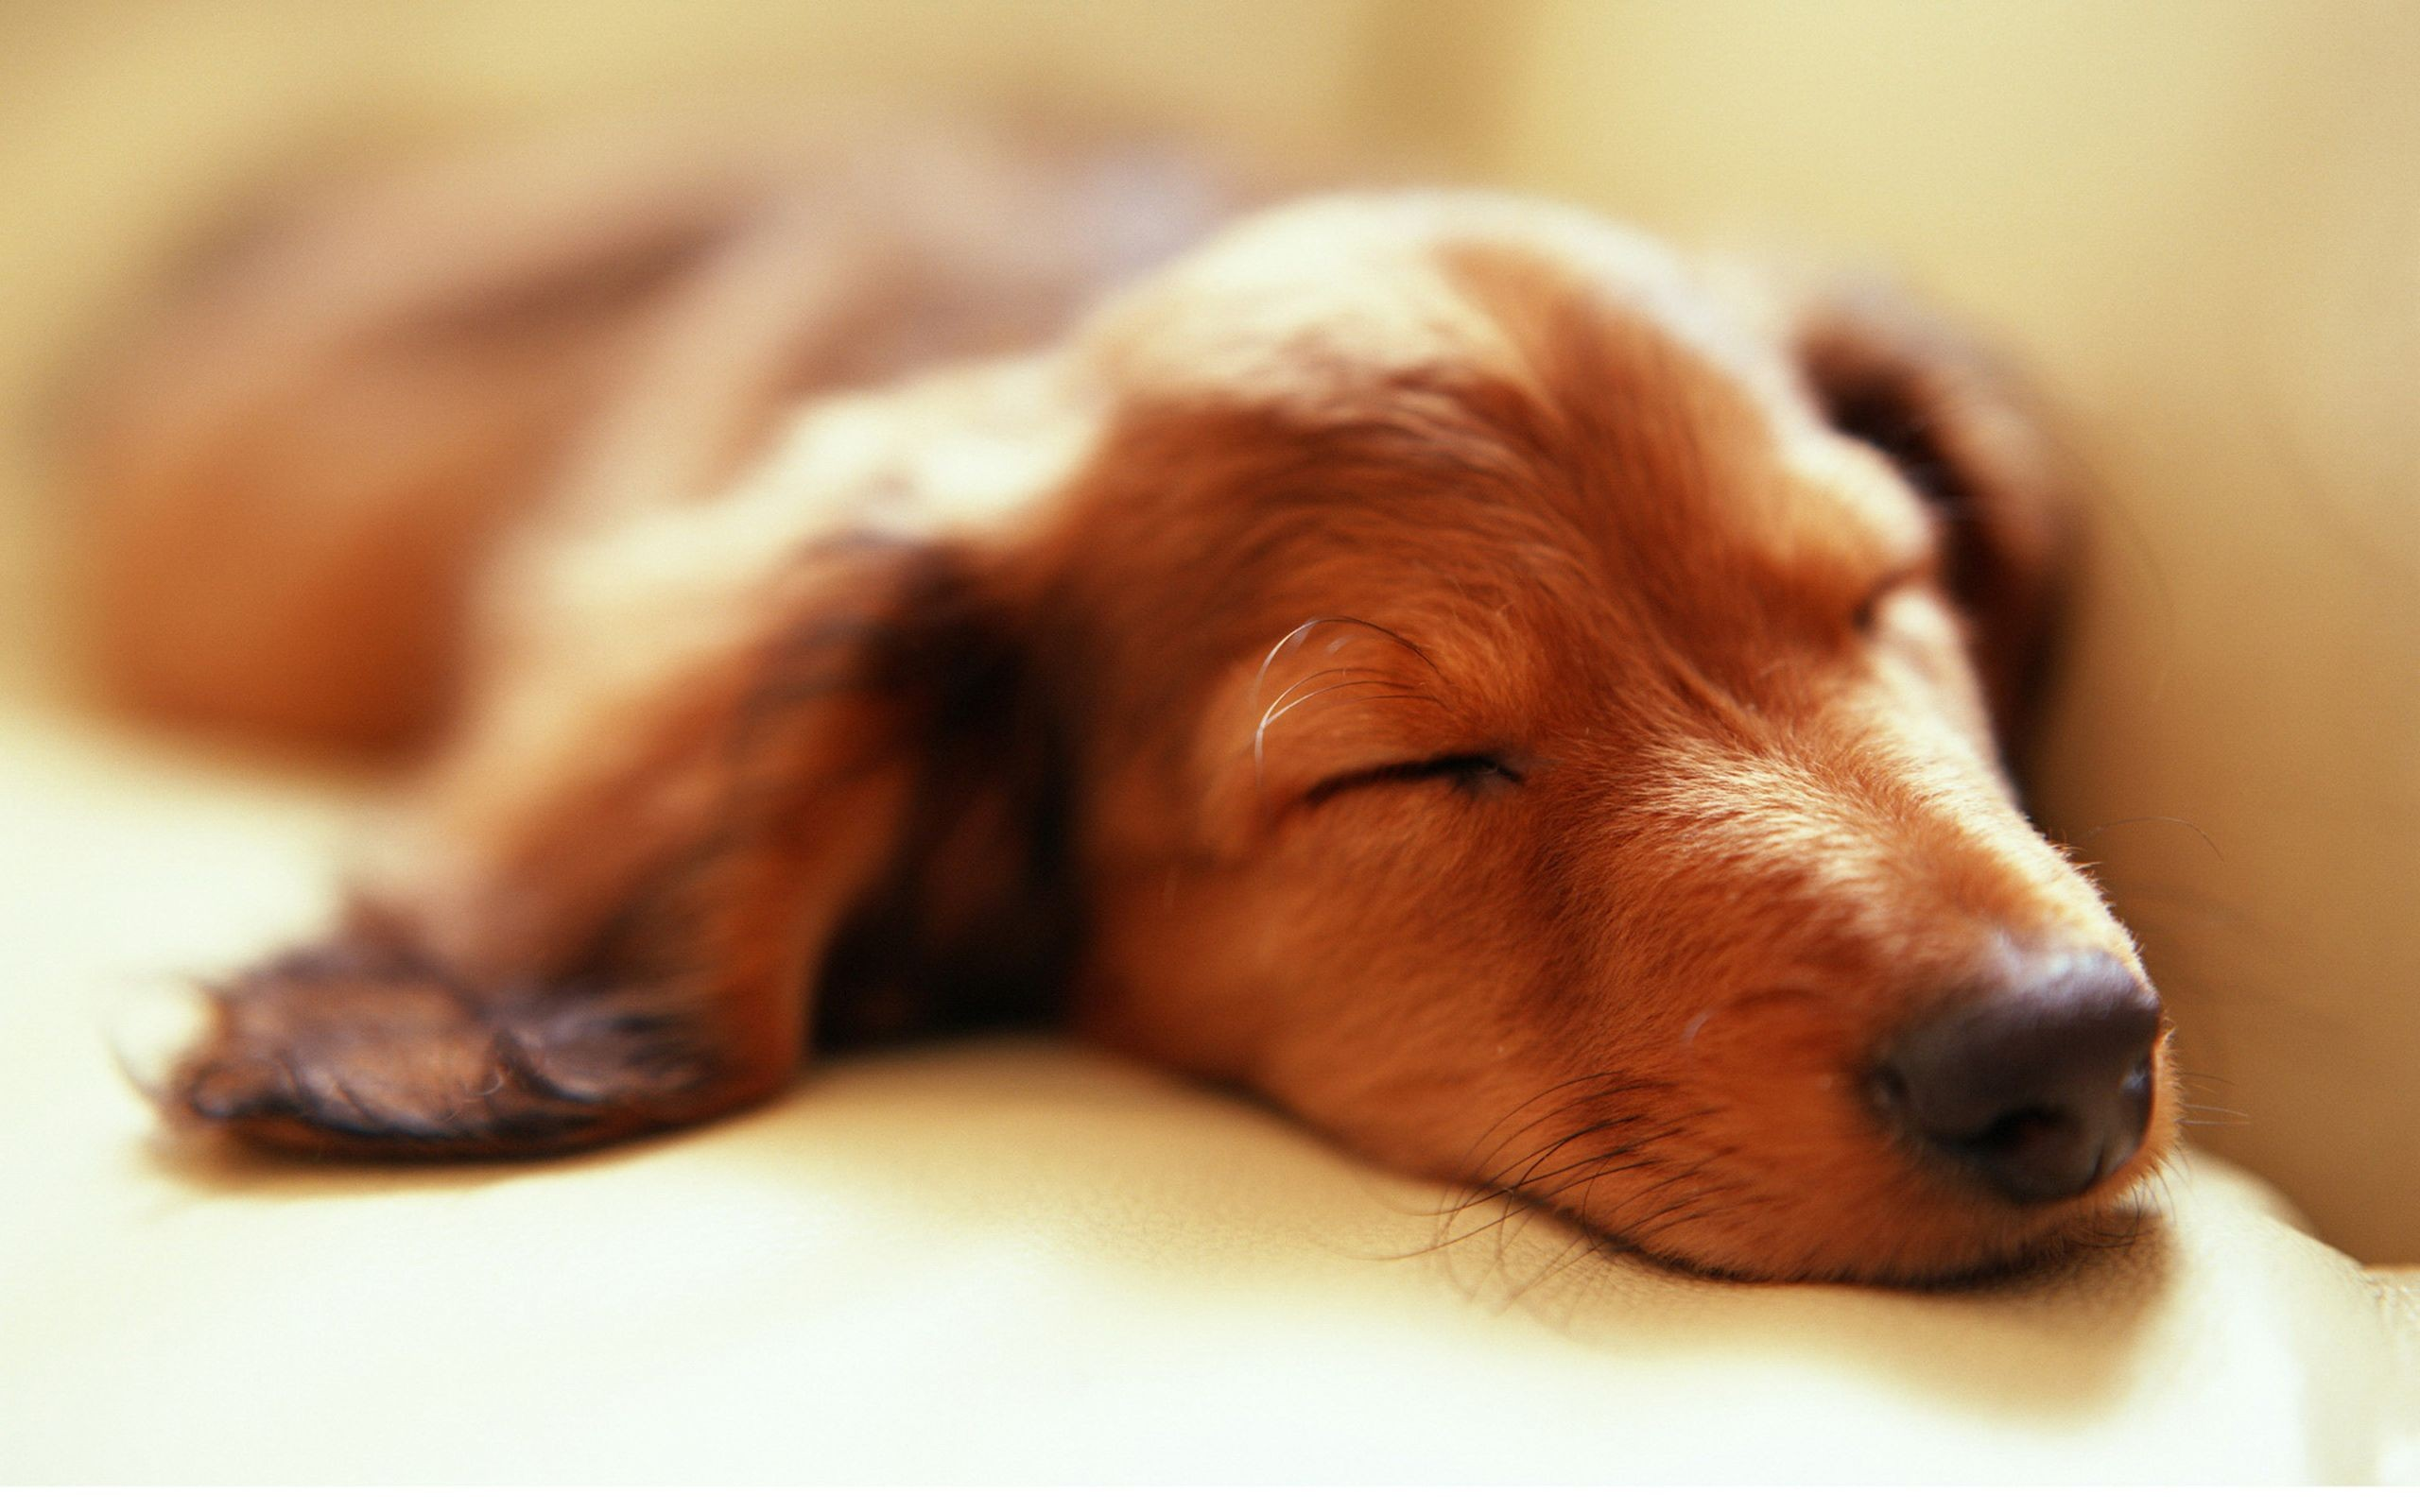 Sleeping dachshund